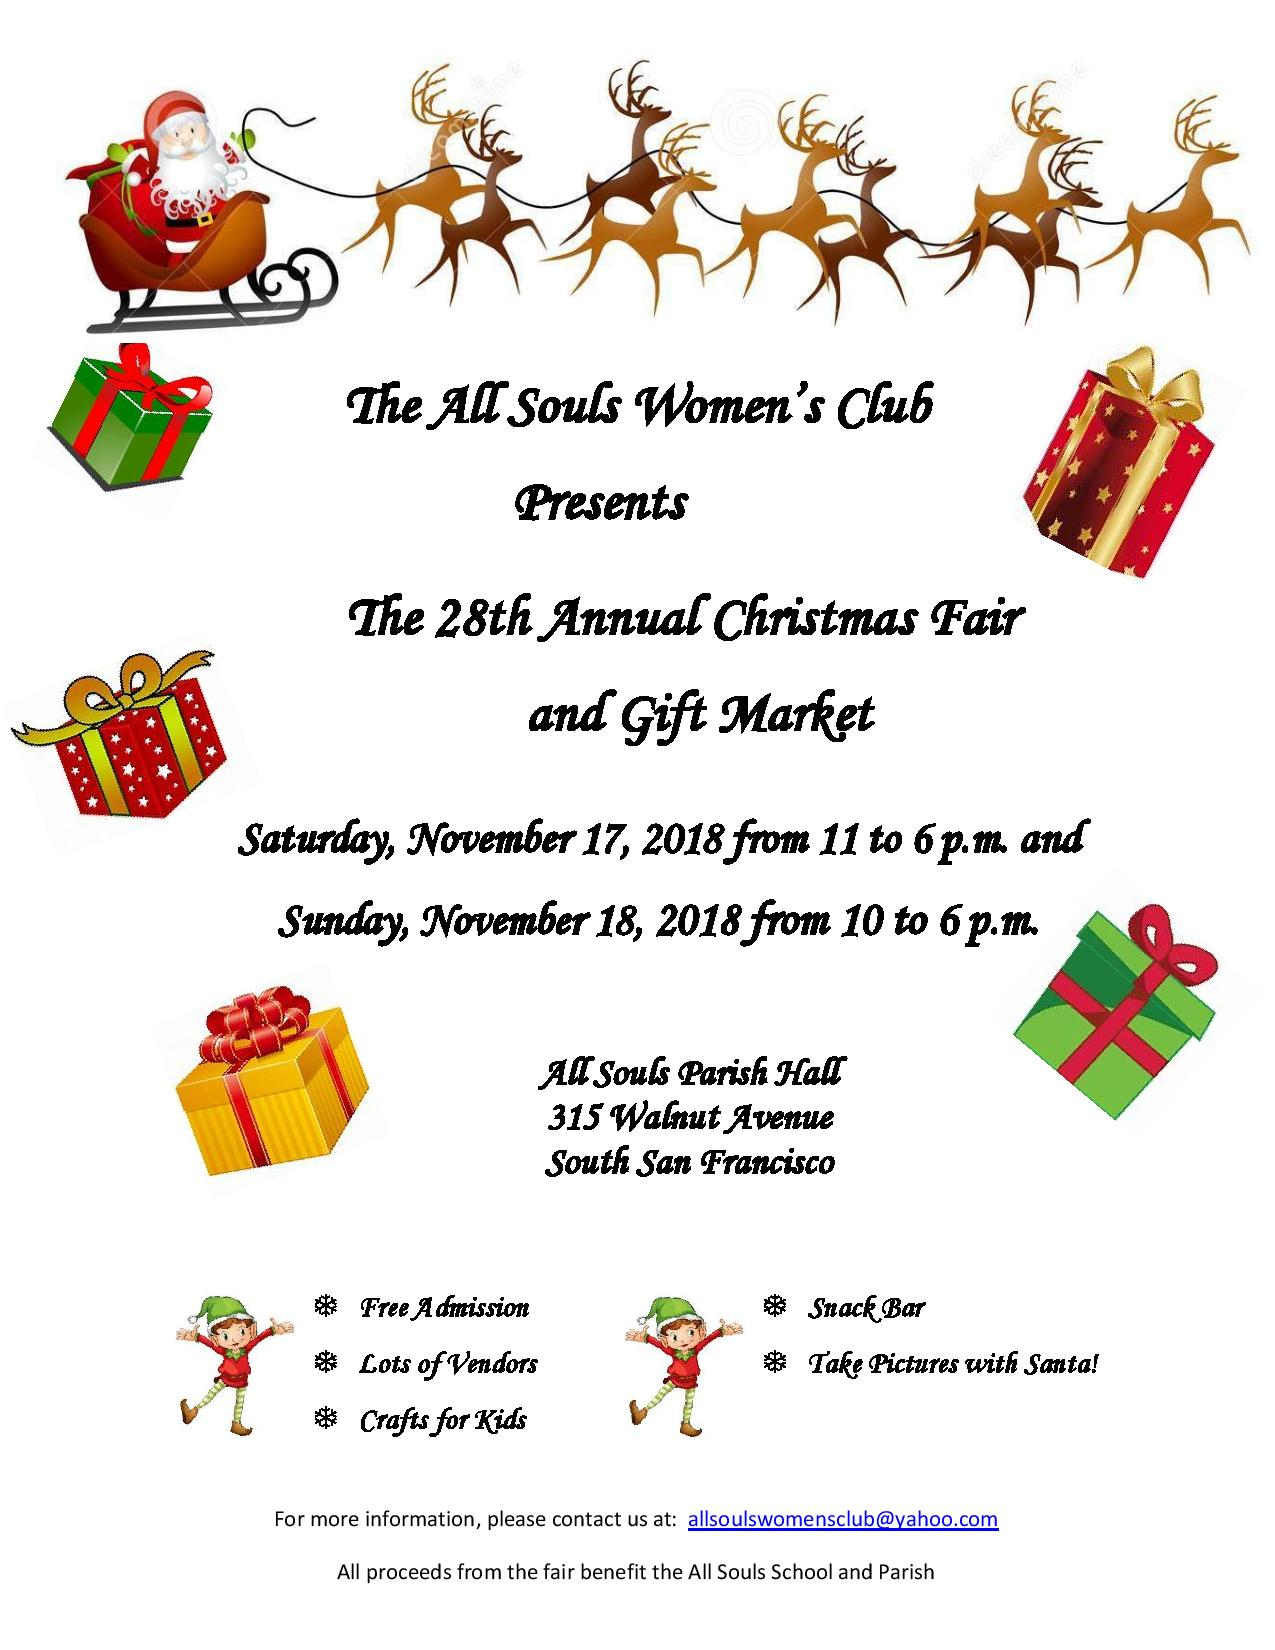 All Souls Women's Club Christmas Fair and Gift Market Set for November 17 and 18